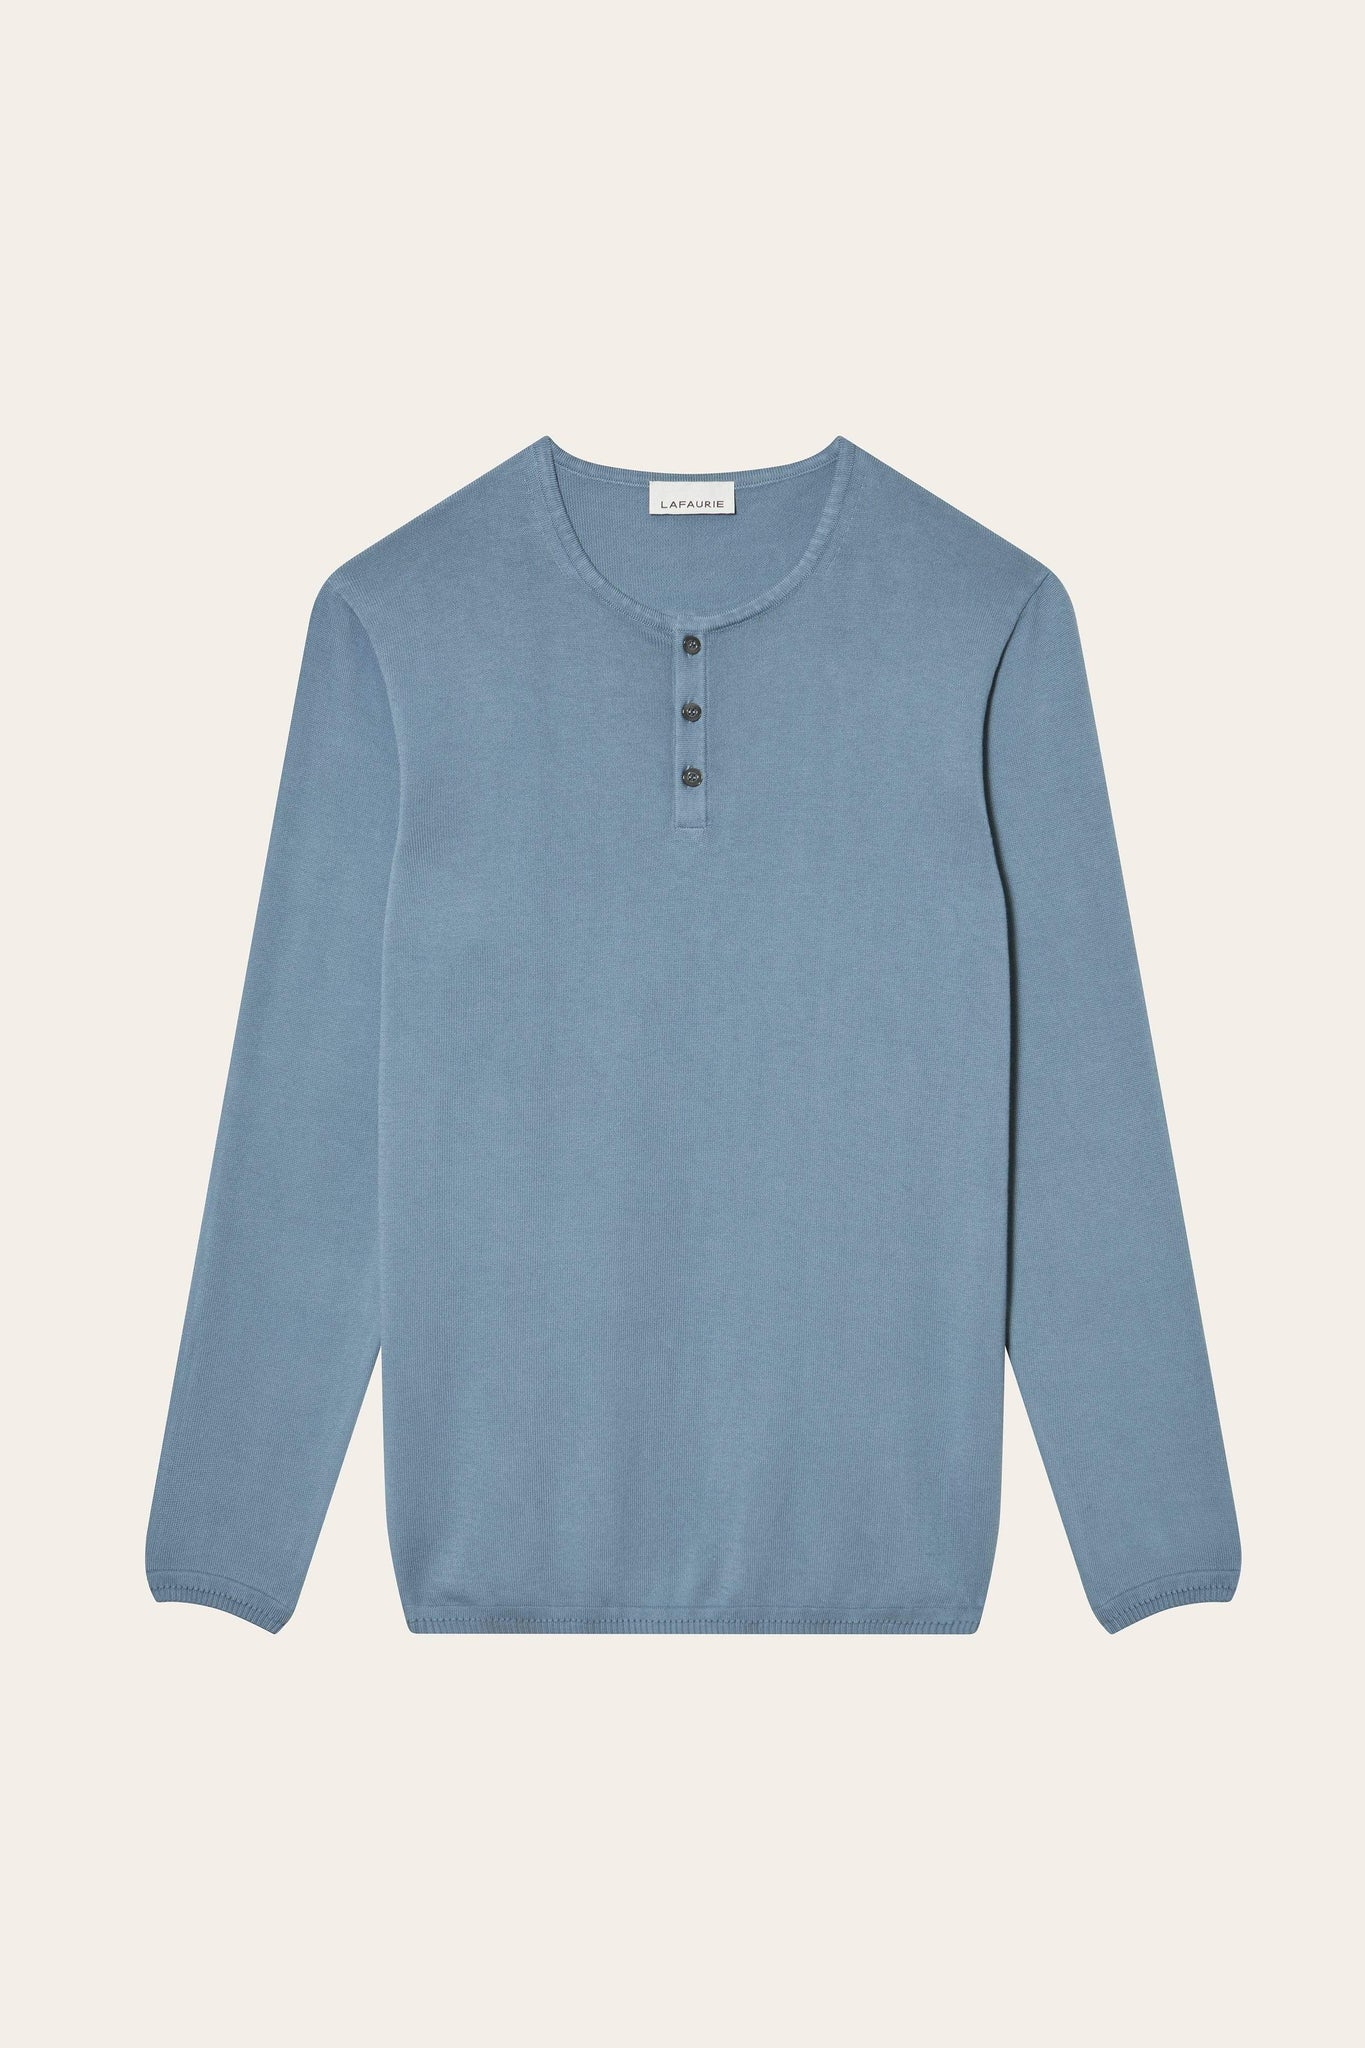 Pull Sud - Bleu Gris - LAFAURIE